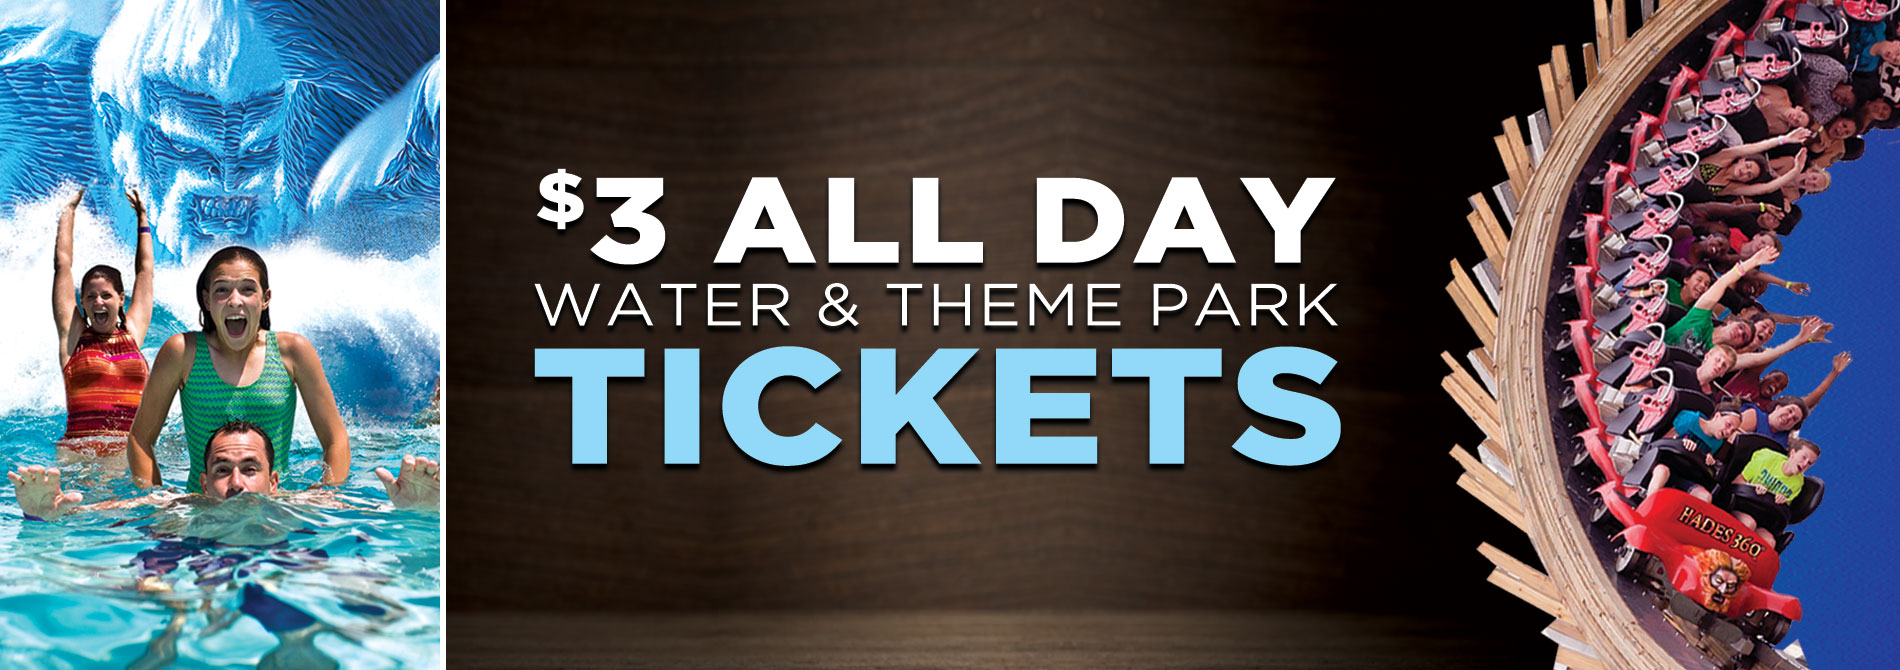 3 Tickets Mt Olympus Water Amp Theme Park